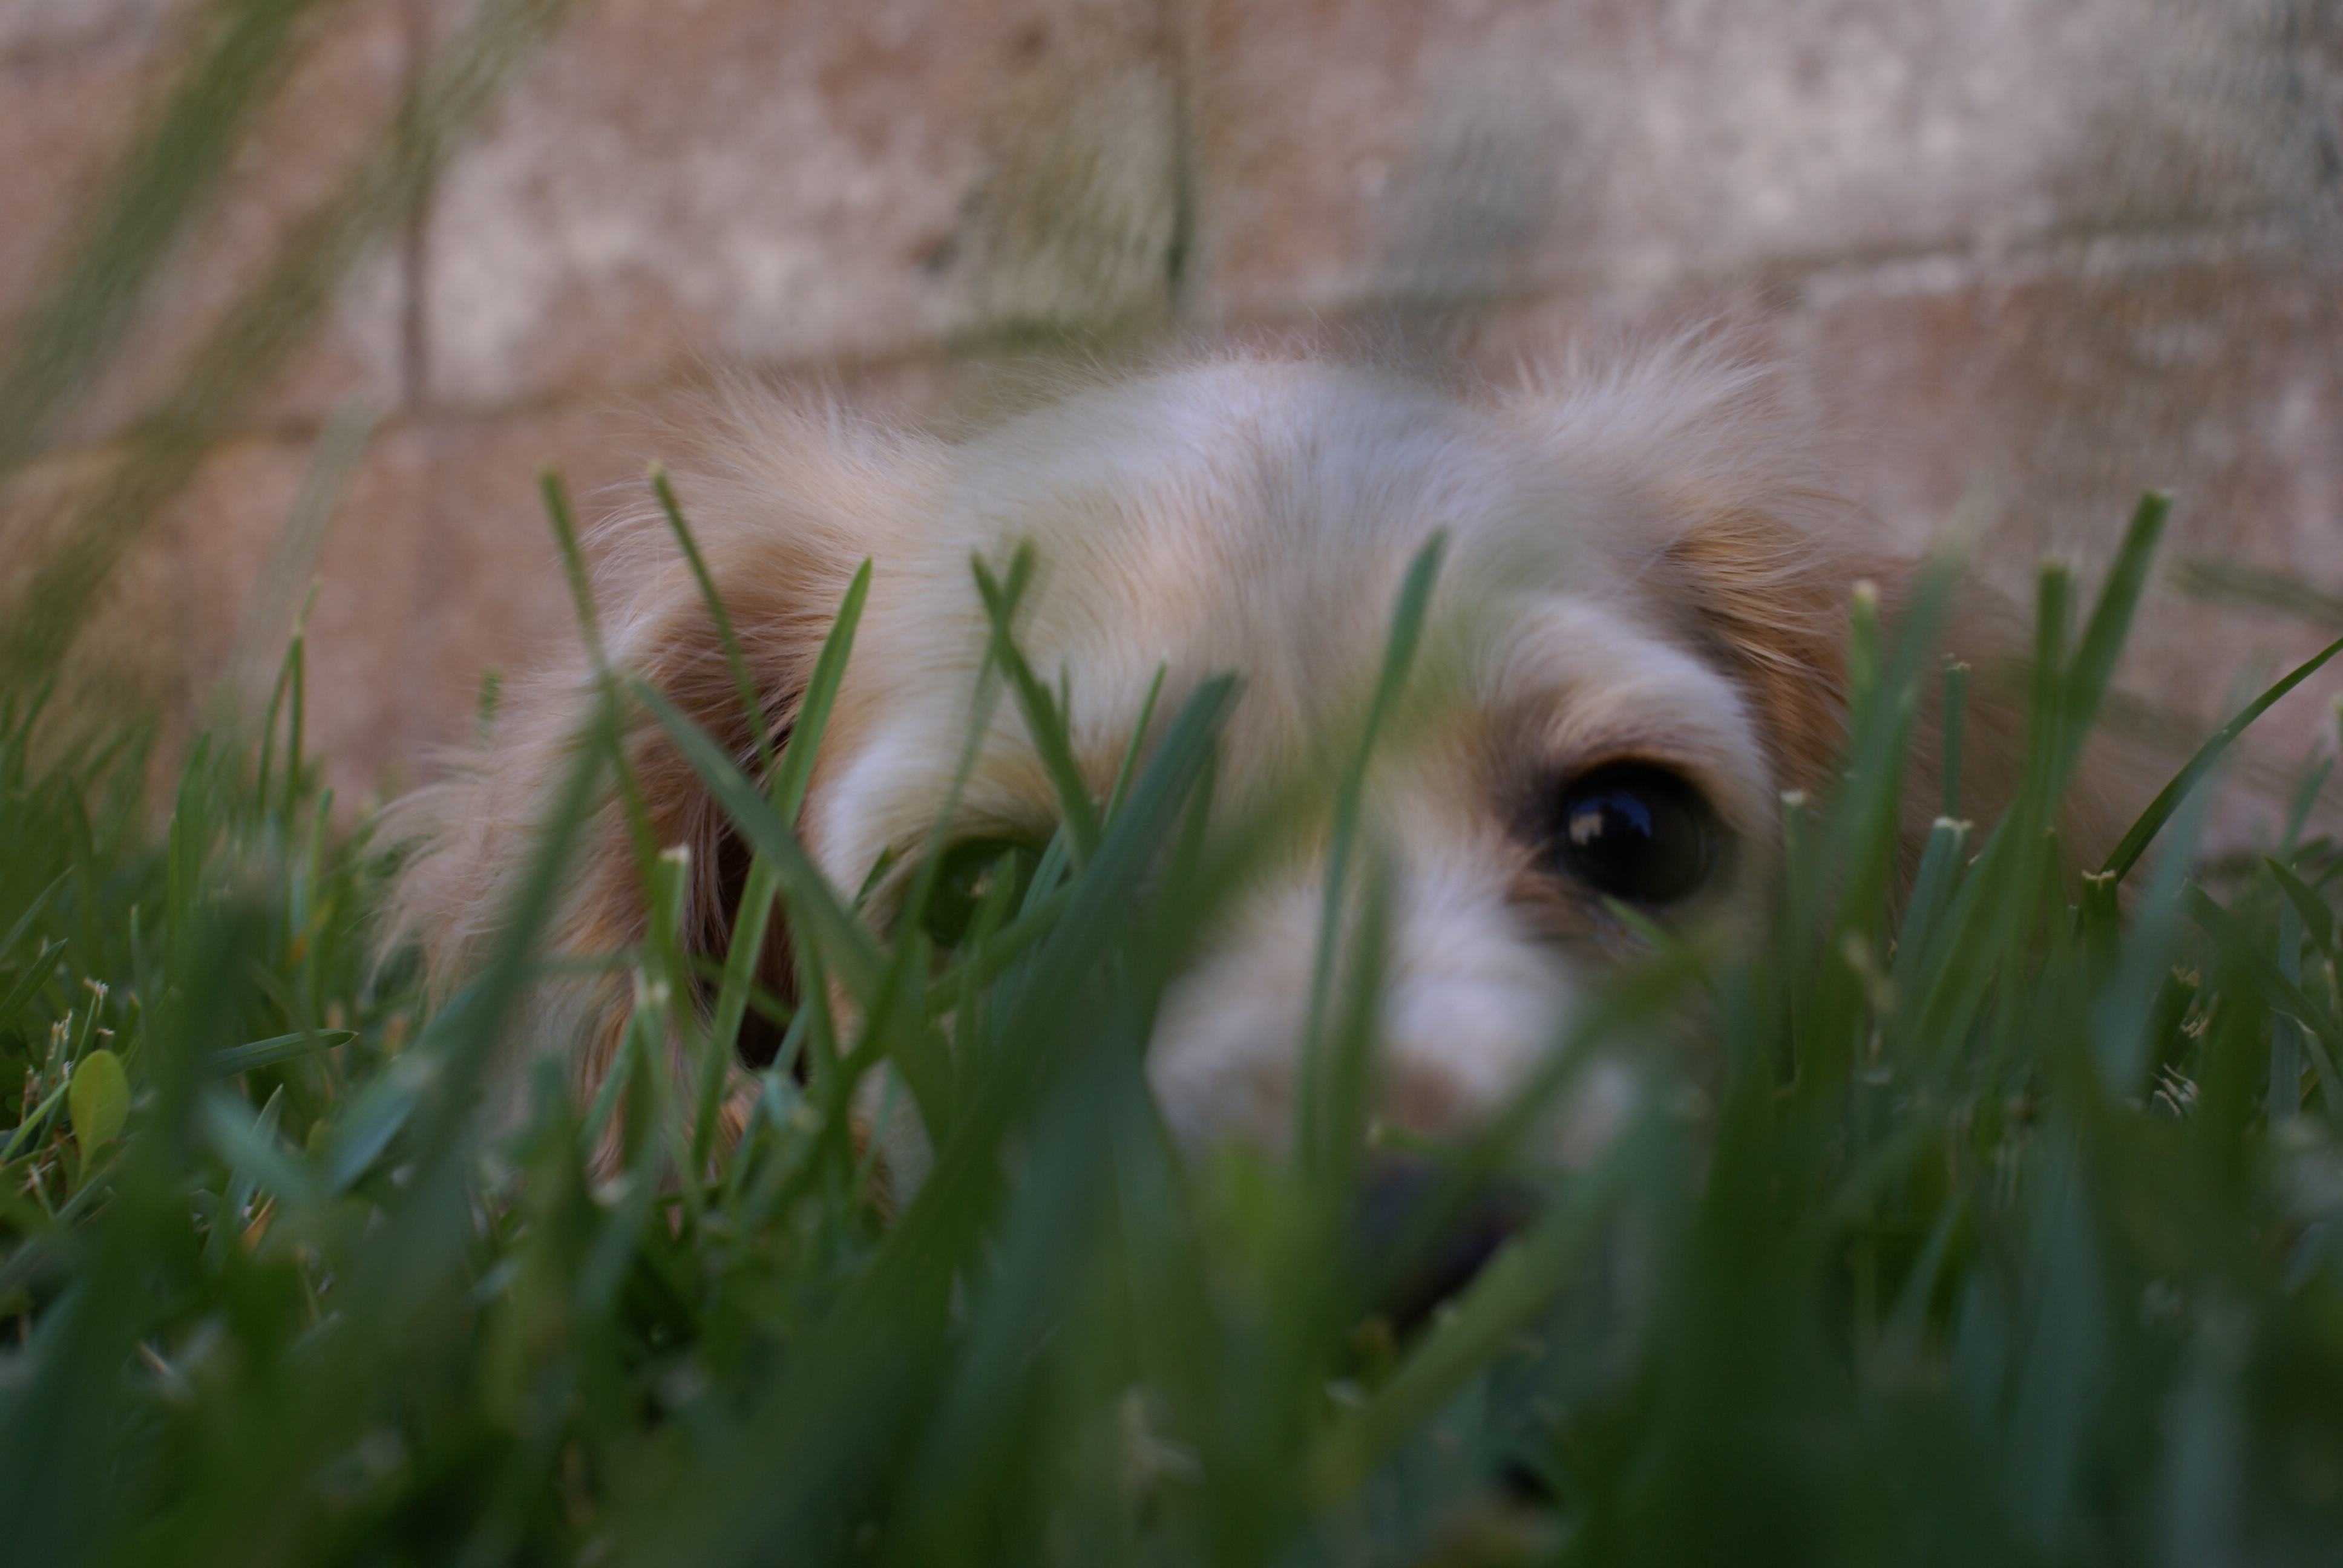 Lady Matilda (aka Matty) waiting in the grass before attacking the camera.